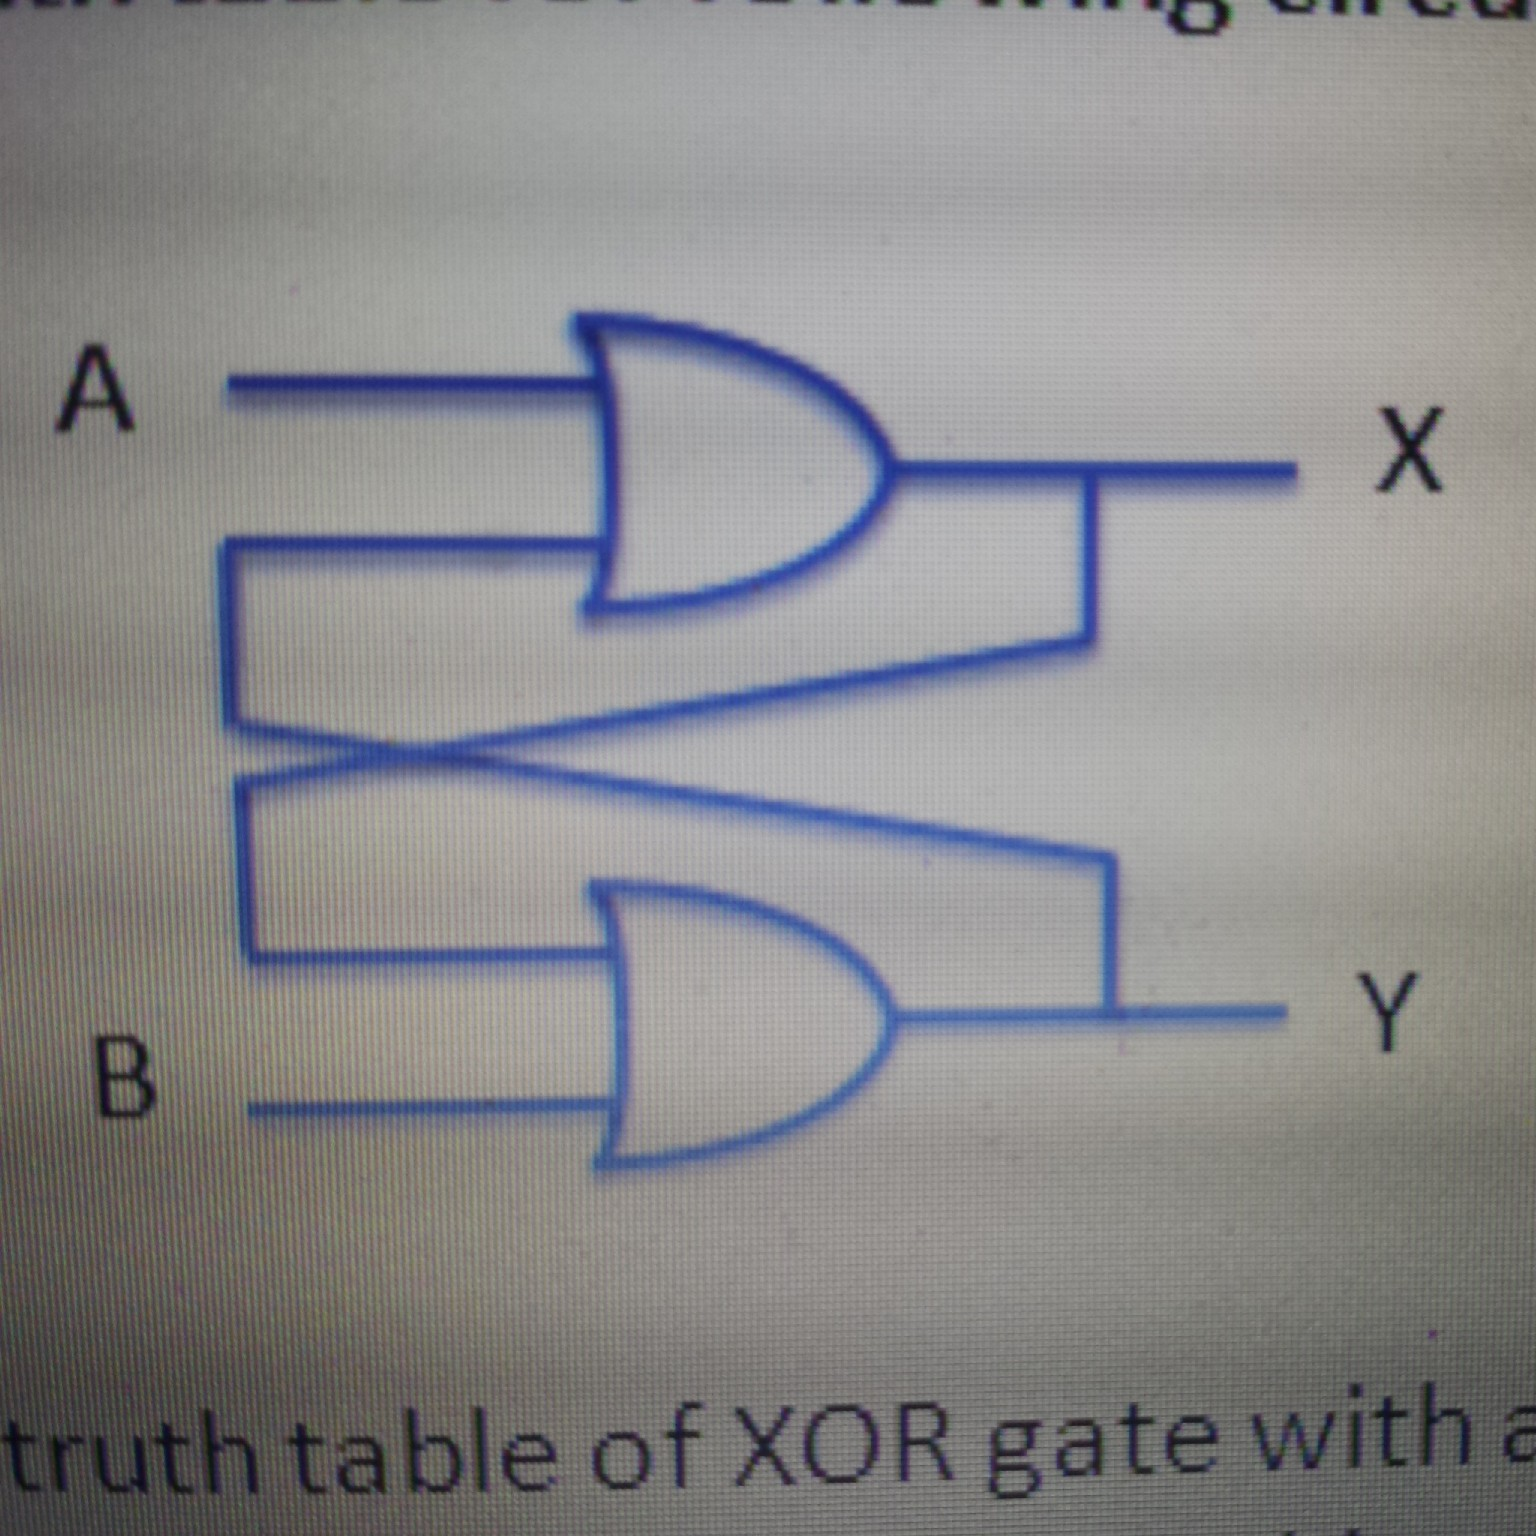 Truth table of XOR gate with